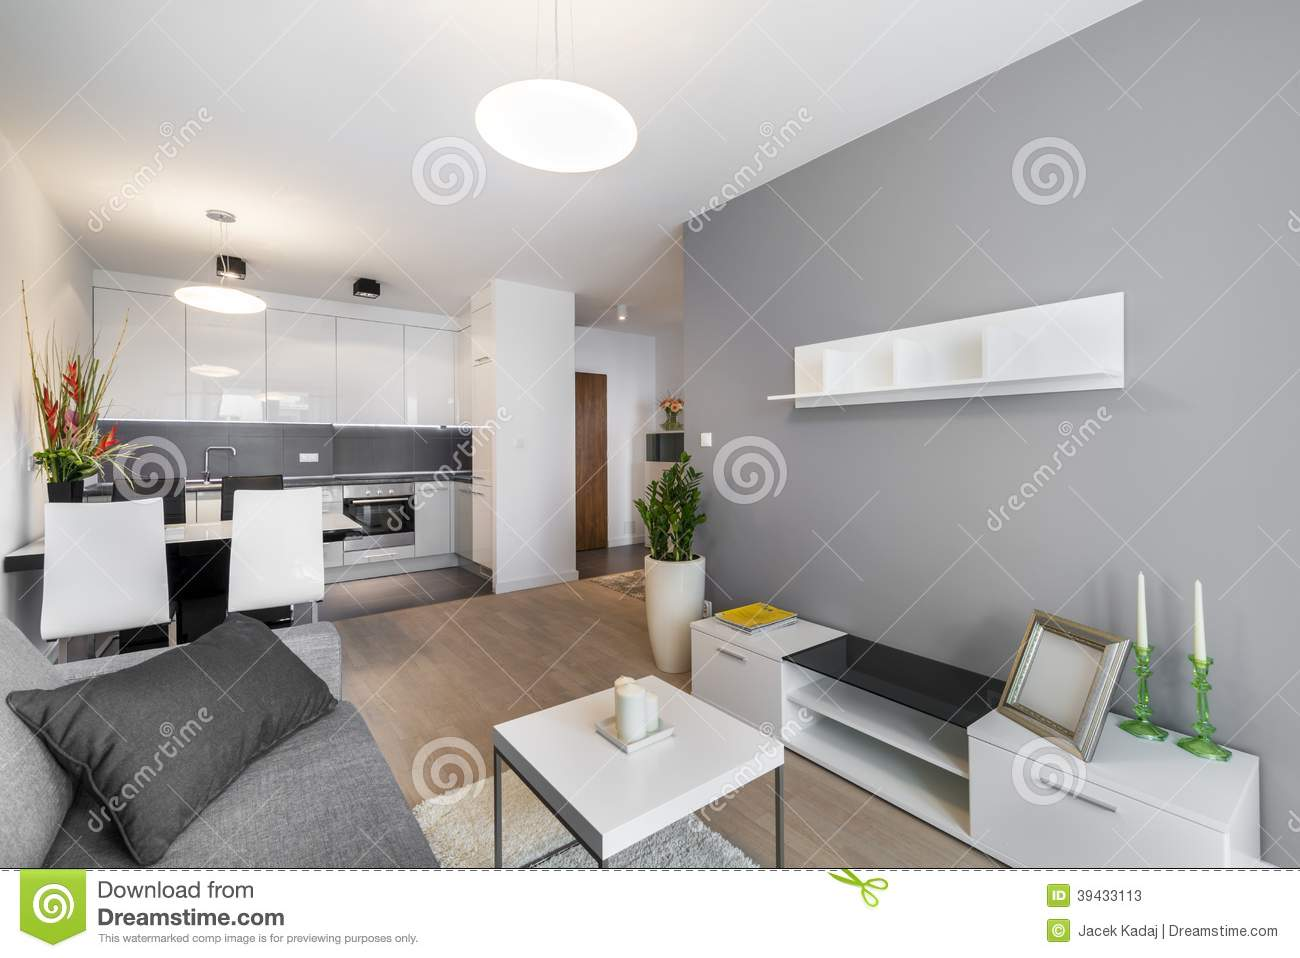 Modern interior design living room stock photo image for Small apartment kitchen and living room ideas